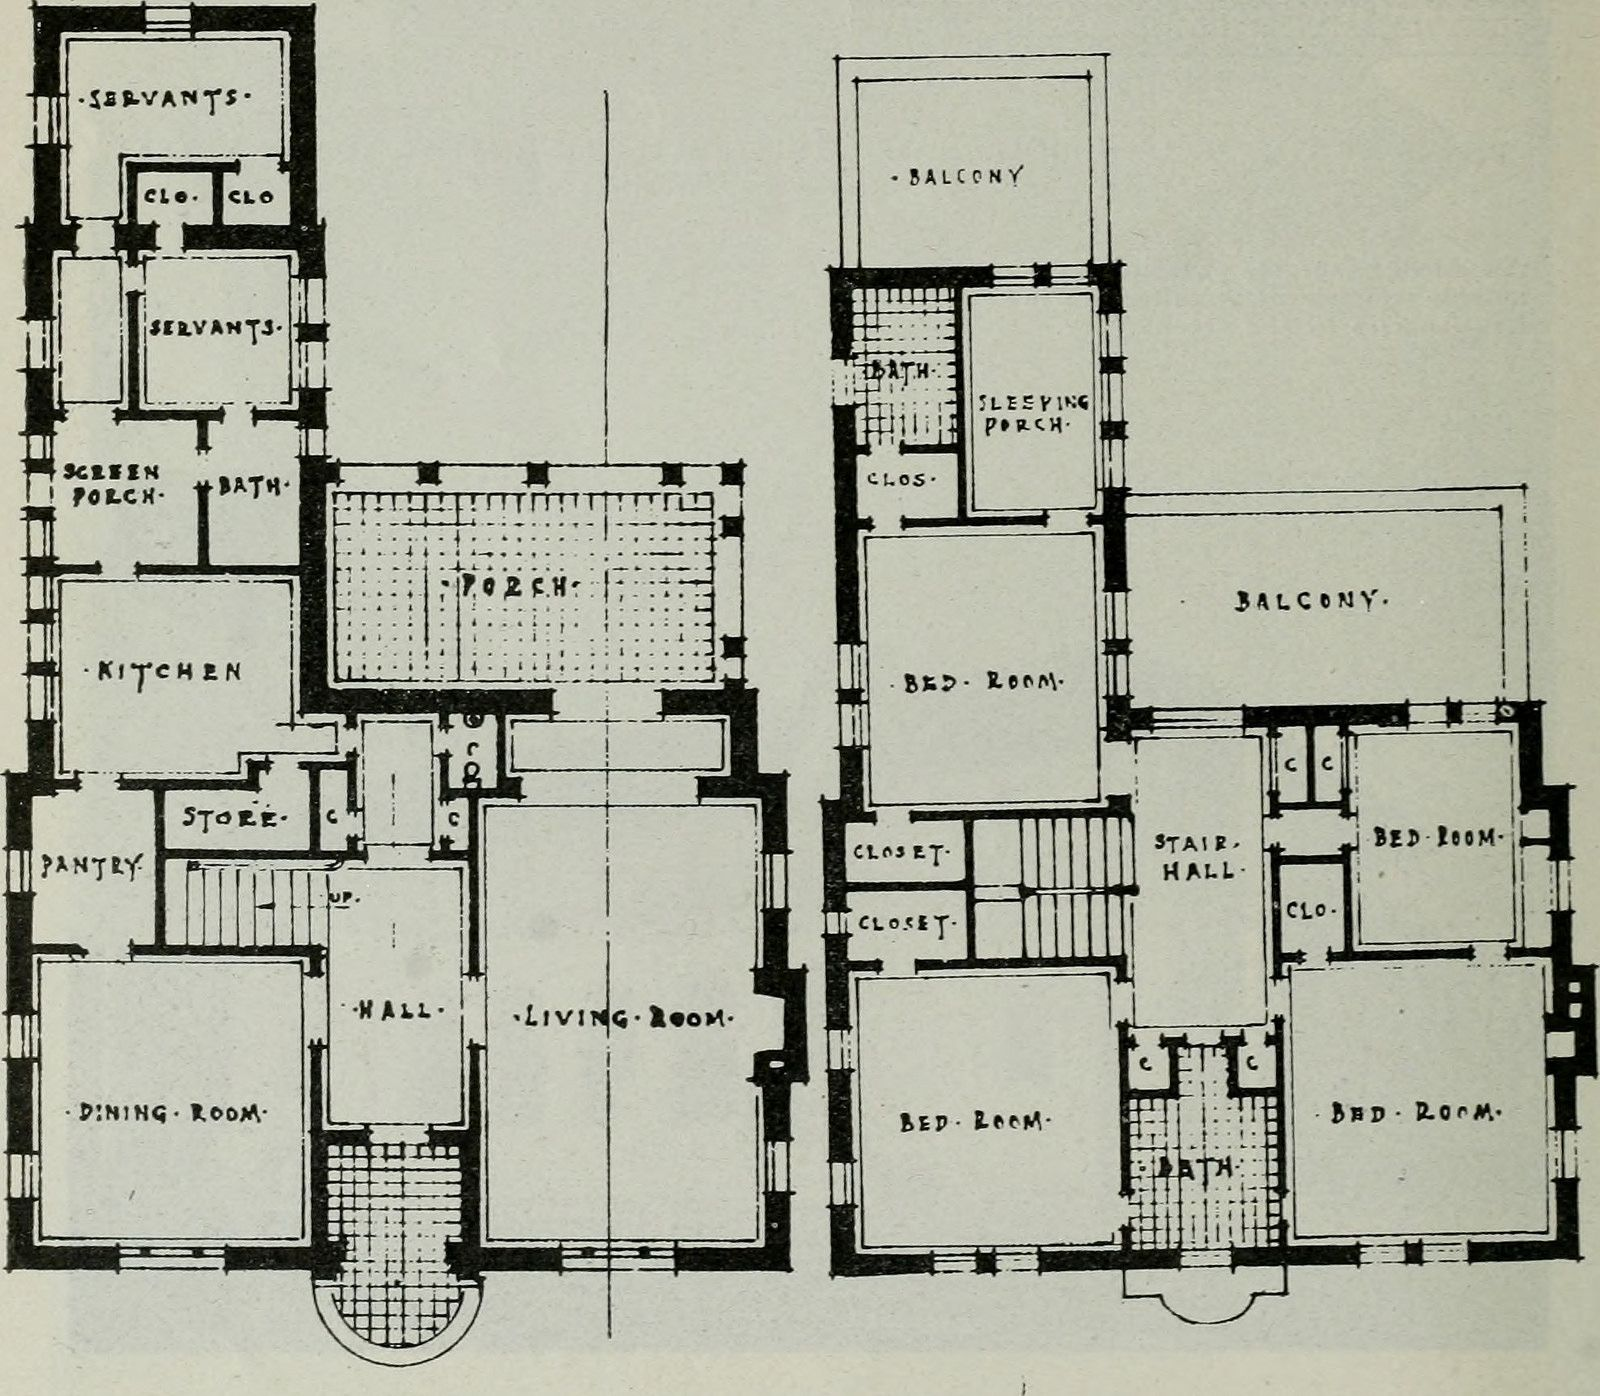 Image From Page 275 Of Architect And Engineer 1905 Vintage House Plans House Floor Plans House Plans